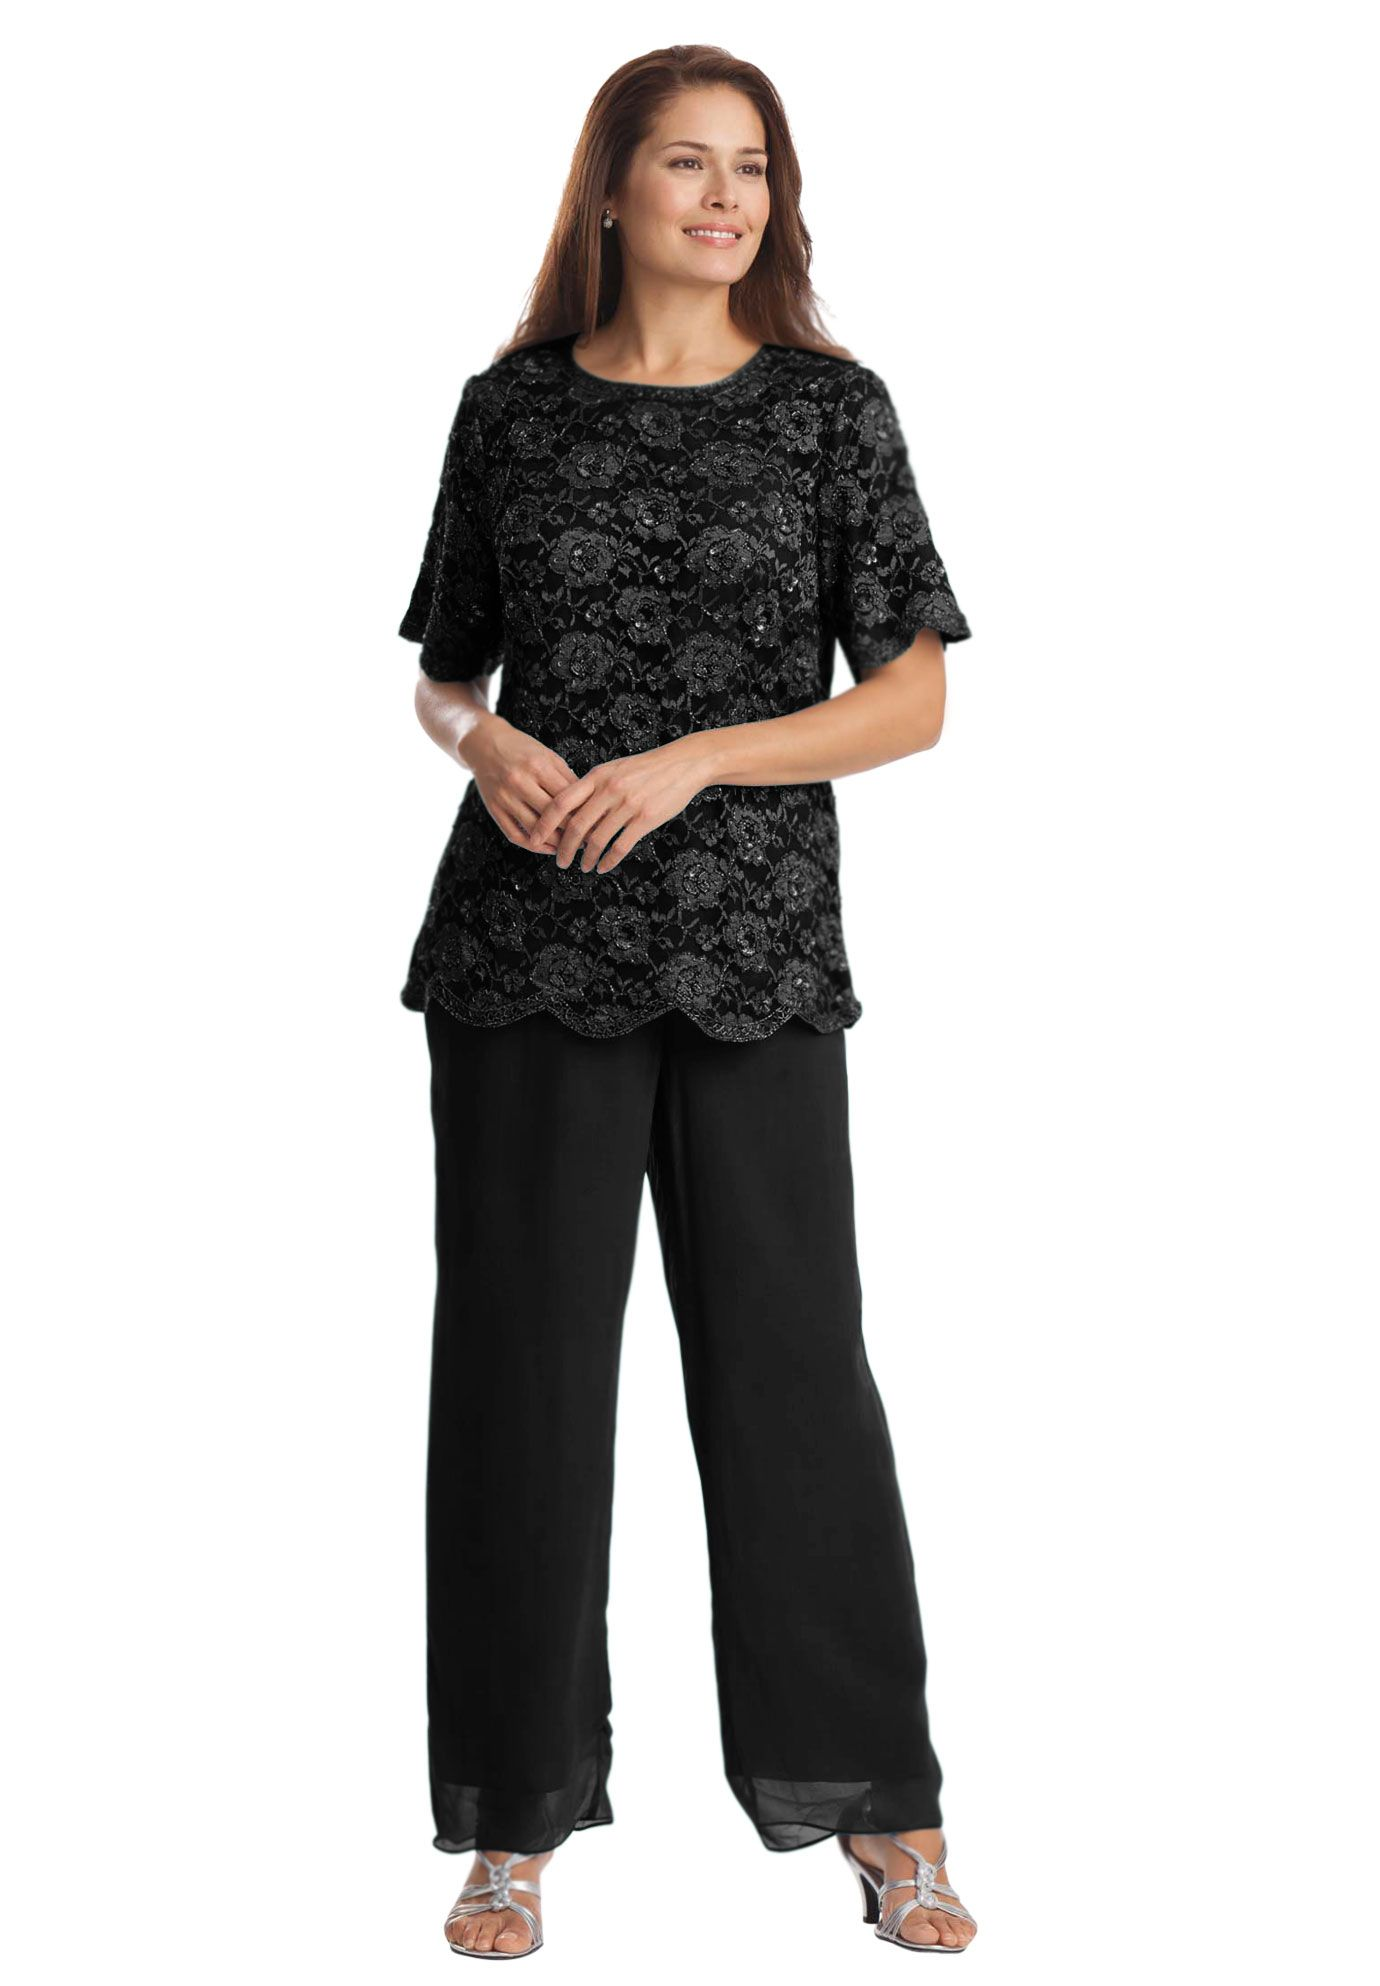 Beaded Tunic And Pant Set Plus Size Special Occasion